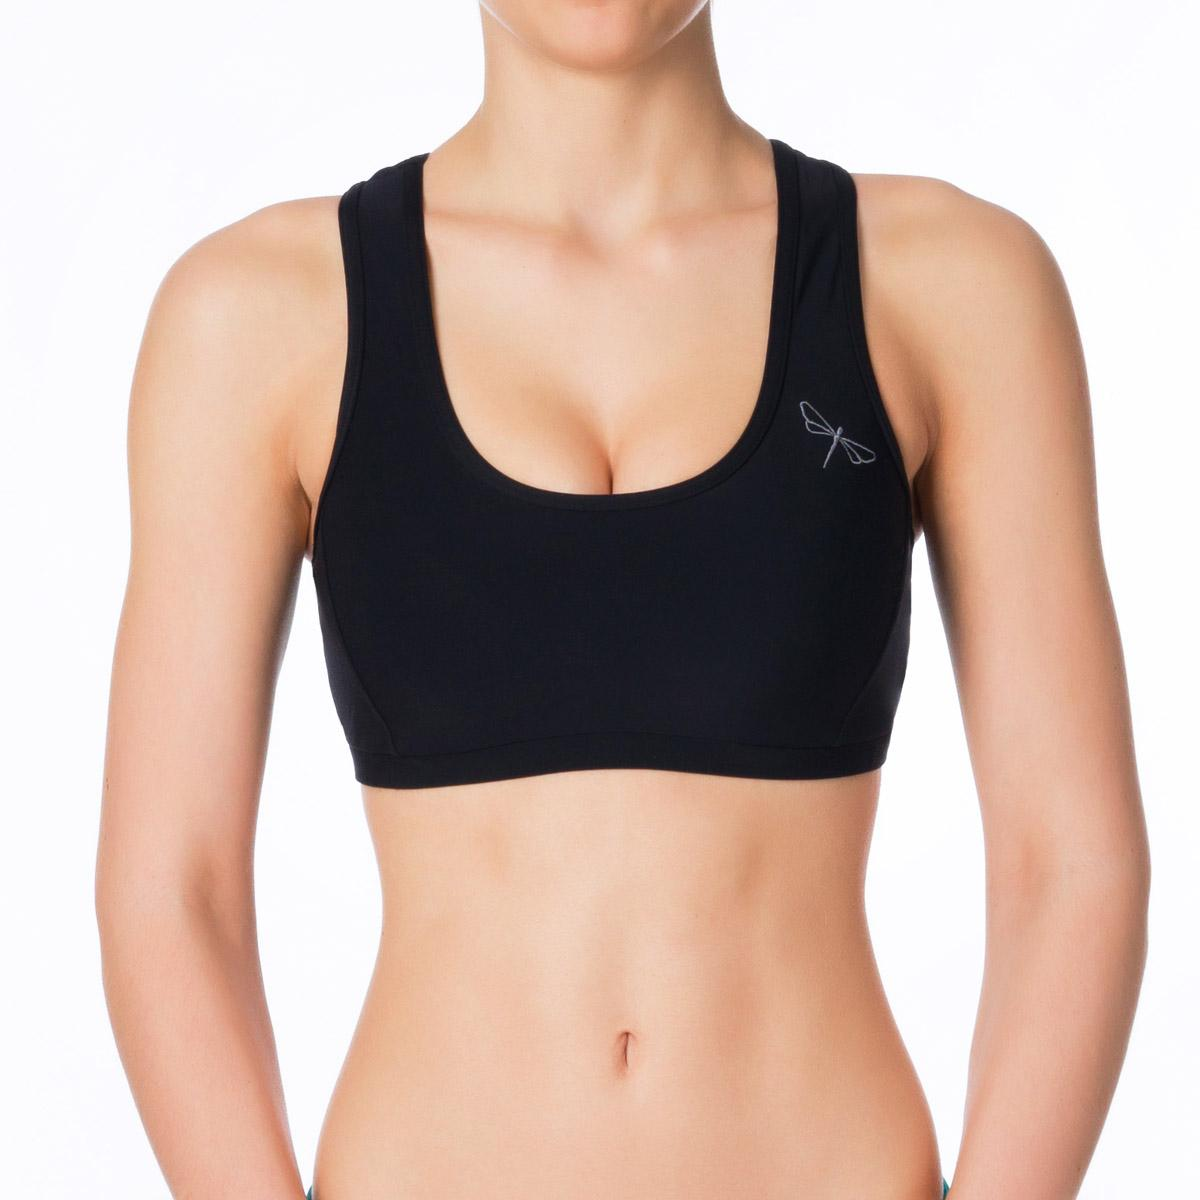 Sporty, black sports bra